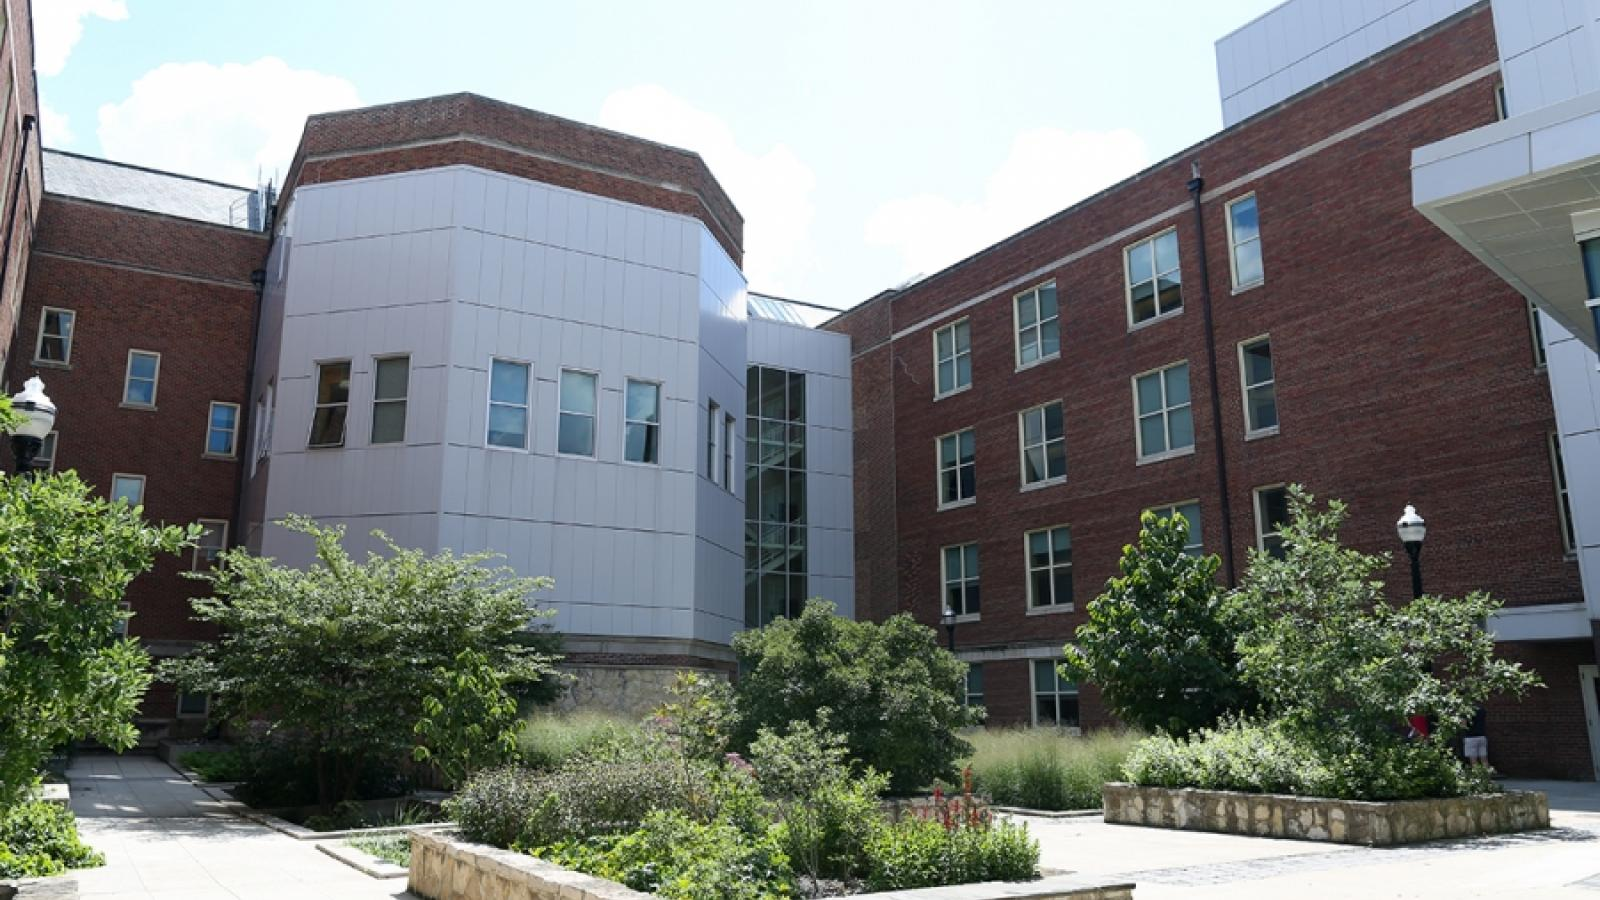 Exterior Photo of Jennings Hall